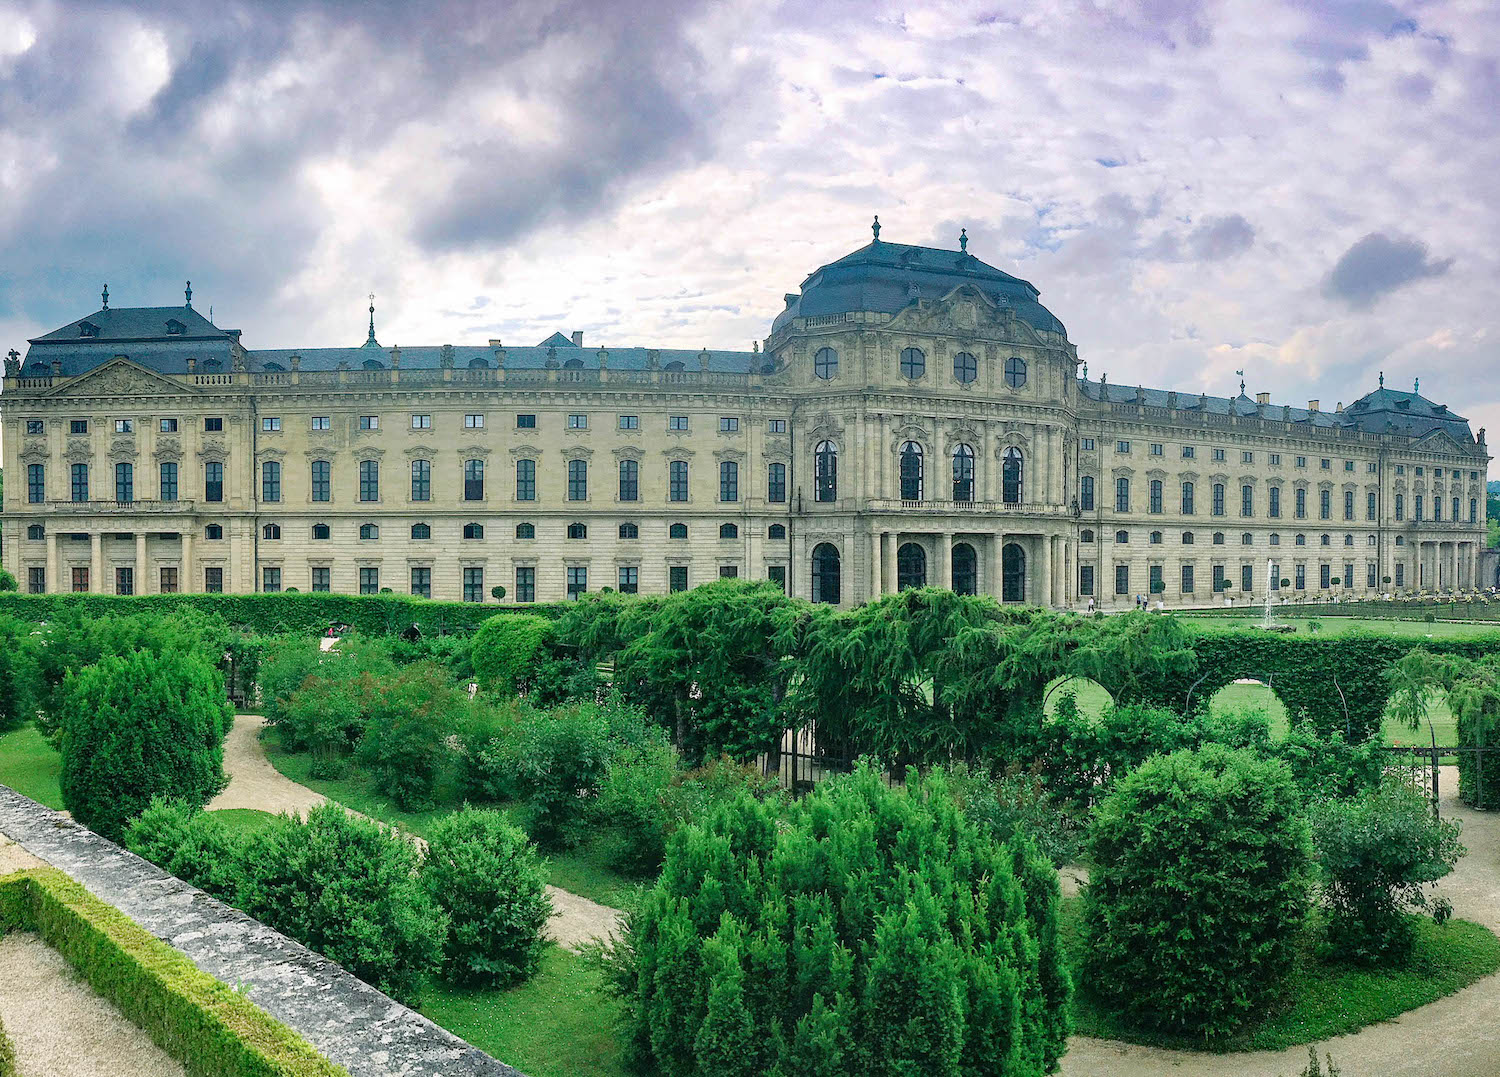 The Würzburg Residence (and my future home).